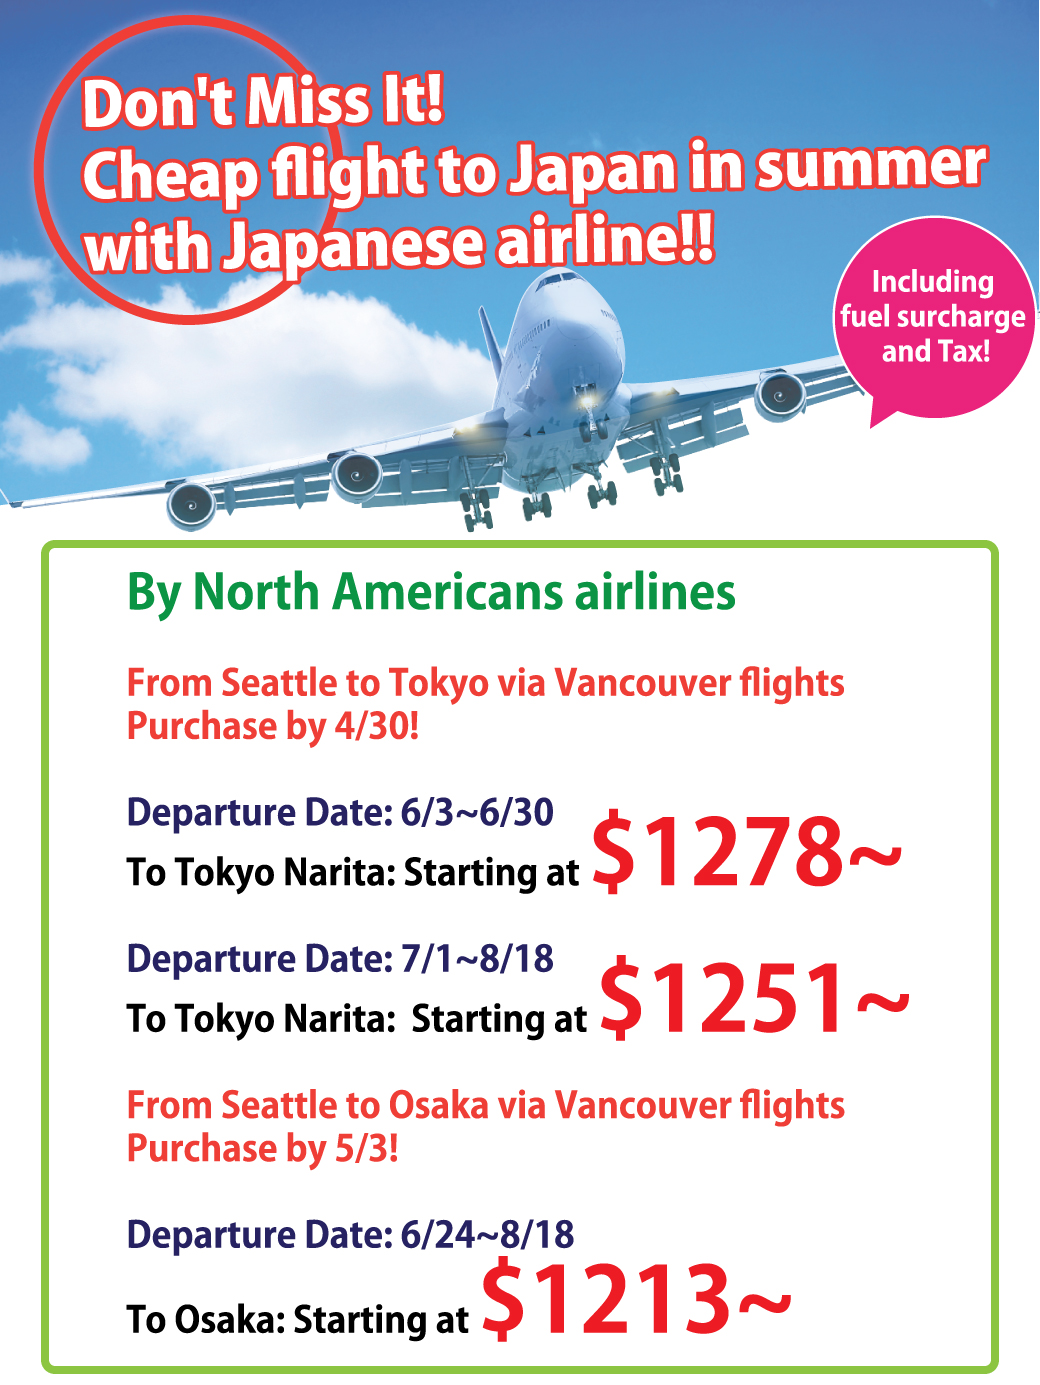 Don't Miss It! Cheap flight to Japan in summer with Japanese airline!!